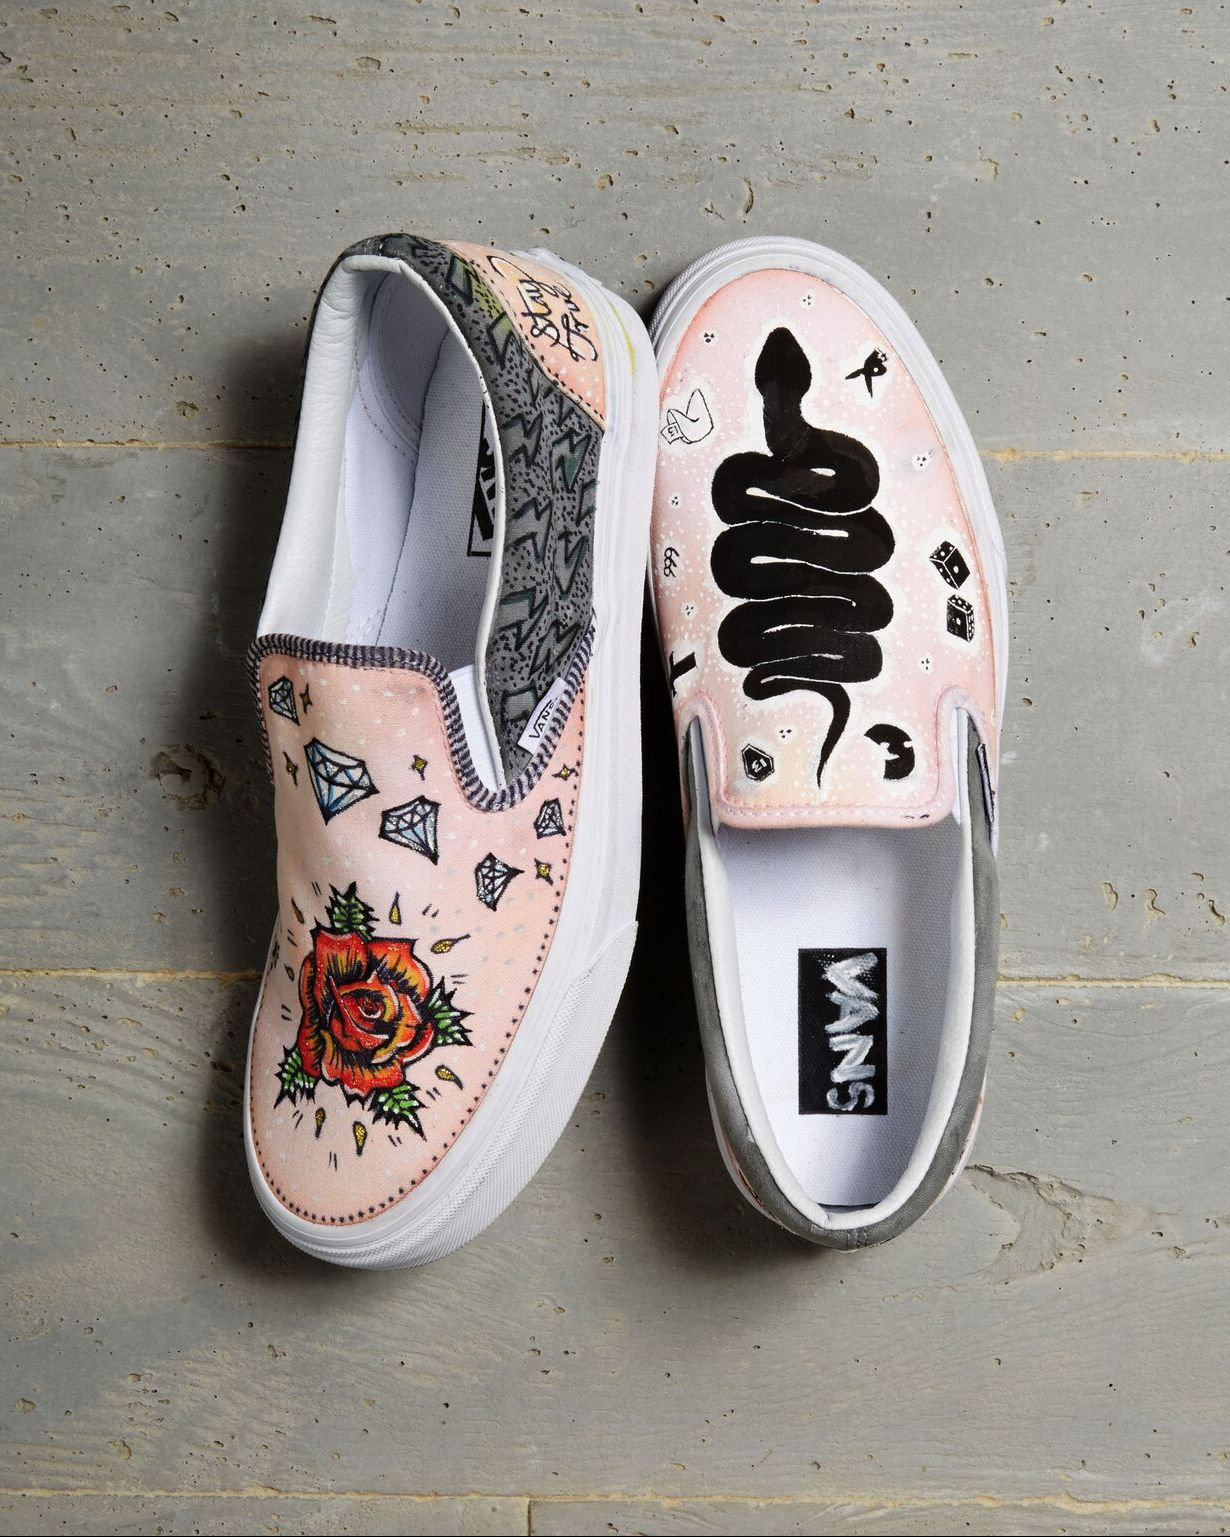 Shoes Custom Vans By 2018 Culture Elloway AmbassadorAndi ZiuOPlXwkT